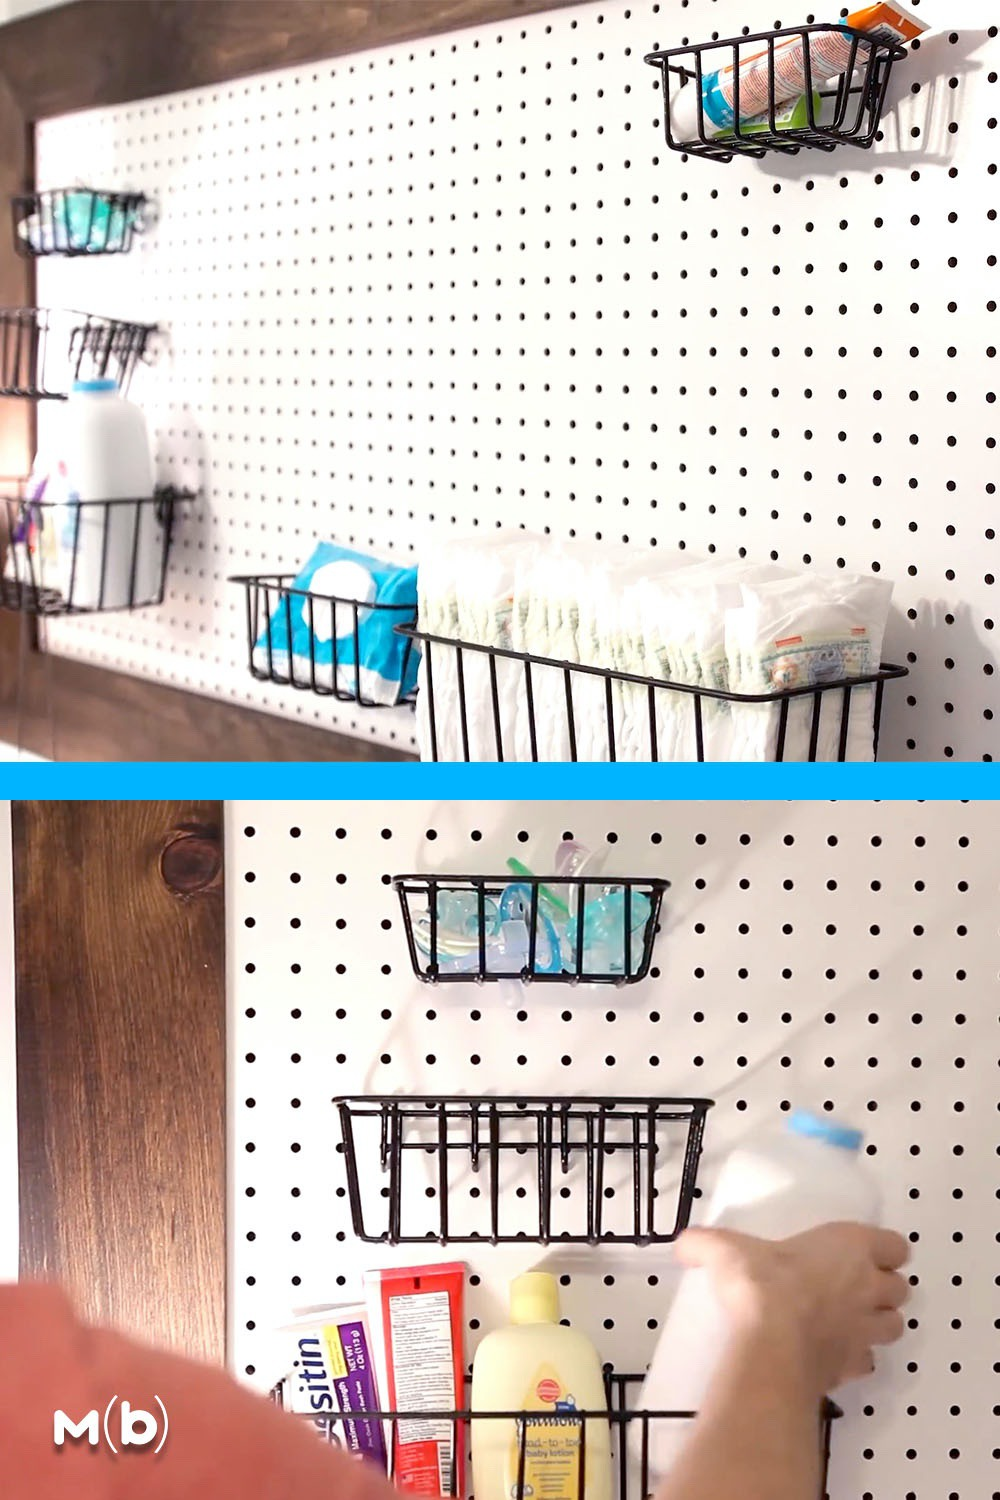 How to build a DIY pegboard wall that is perfect for the nursery. This cost around $25 in materials and is a great way to organize a changing station! #diynursery #woodworking